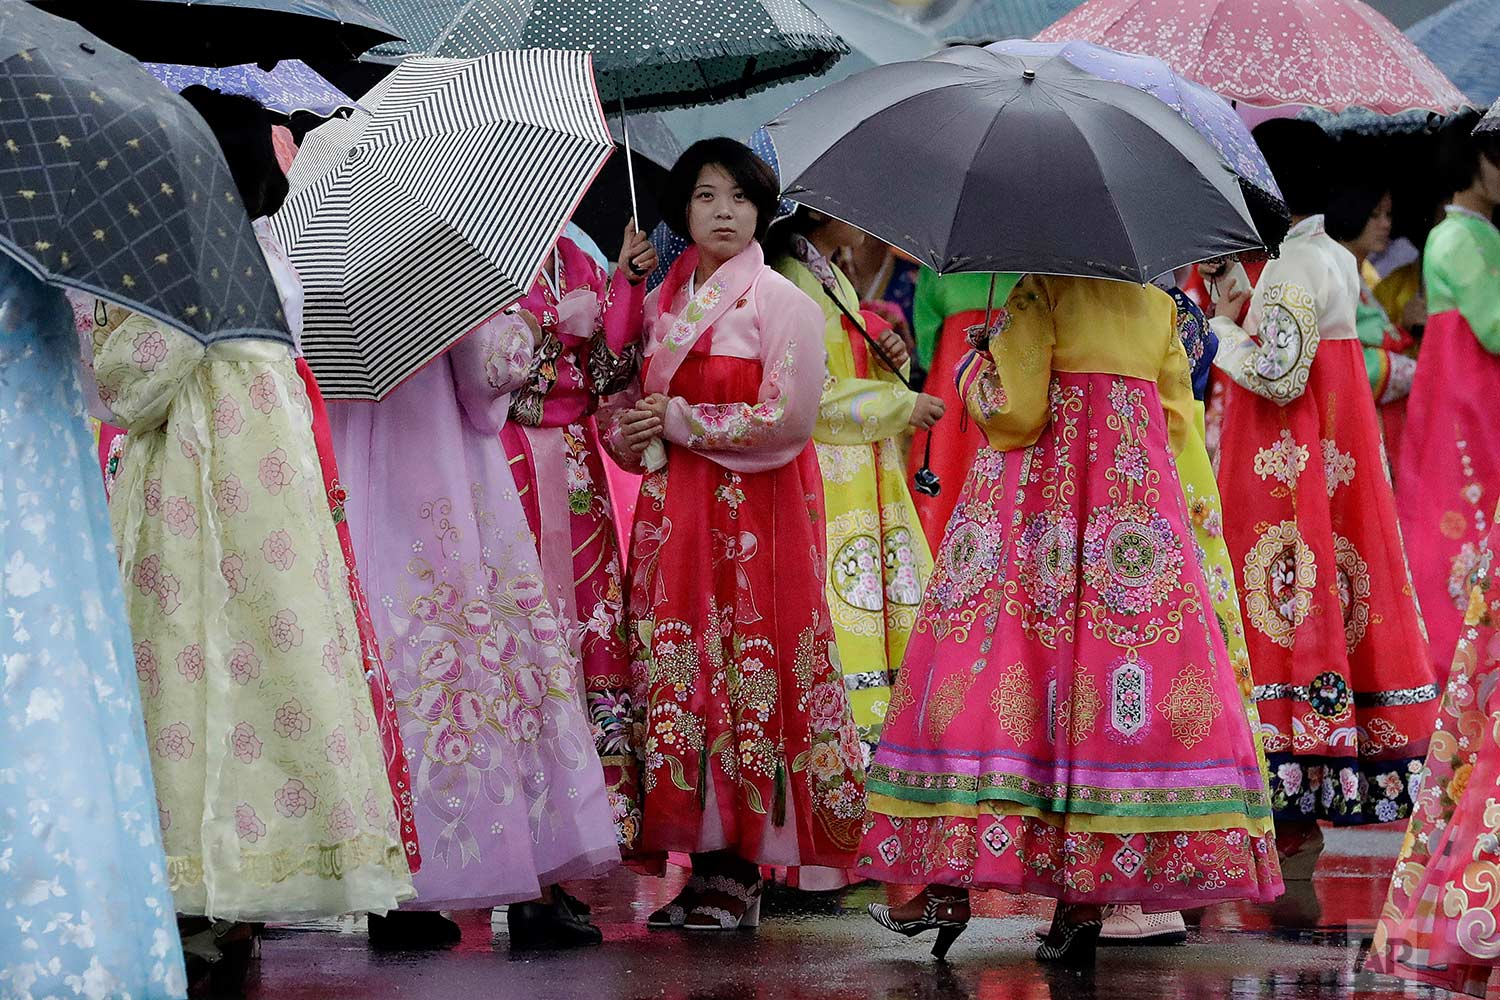 University students wearing traditional Korean dresses wait in the rain for the start of a group dance on Thursday, July 27, 2017, in Pyongyang, North Korea as part of celebrations for the 64th anniversary of the armistice that ended the Korean War. (AP Photo/Wong Maye-E)